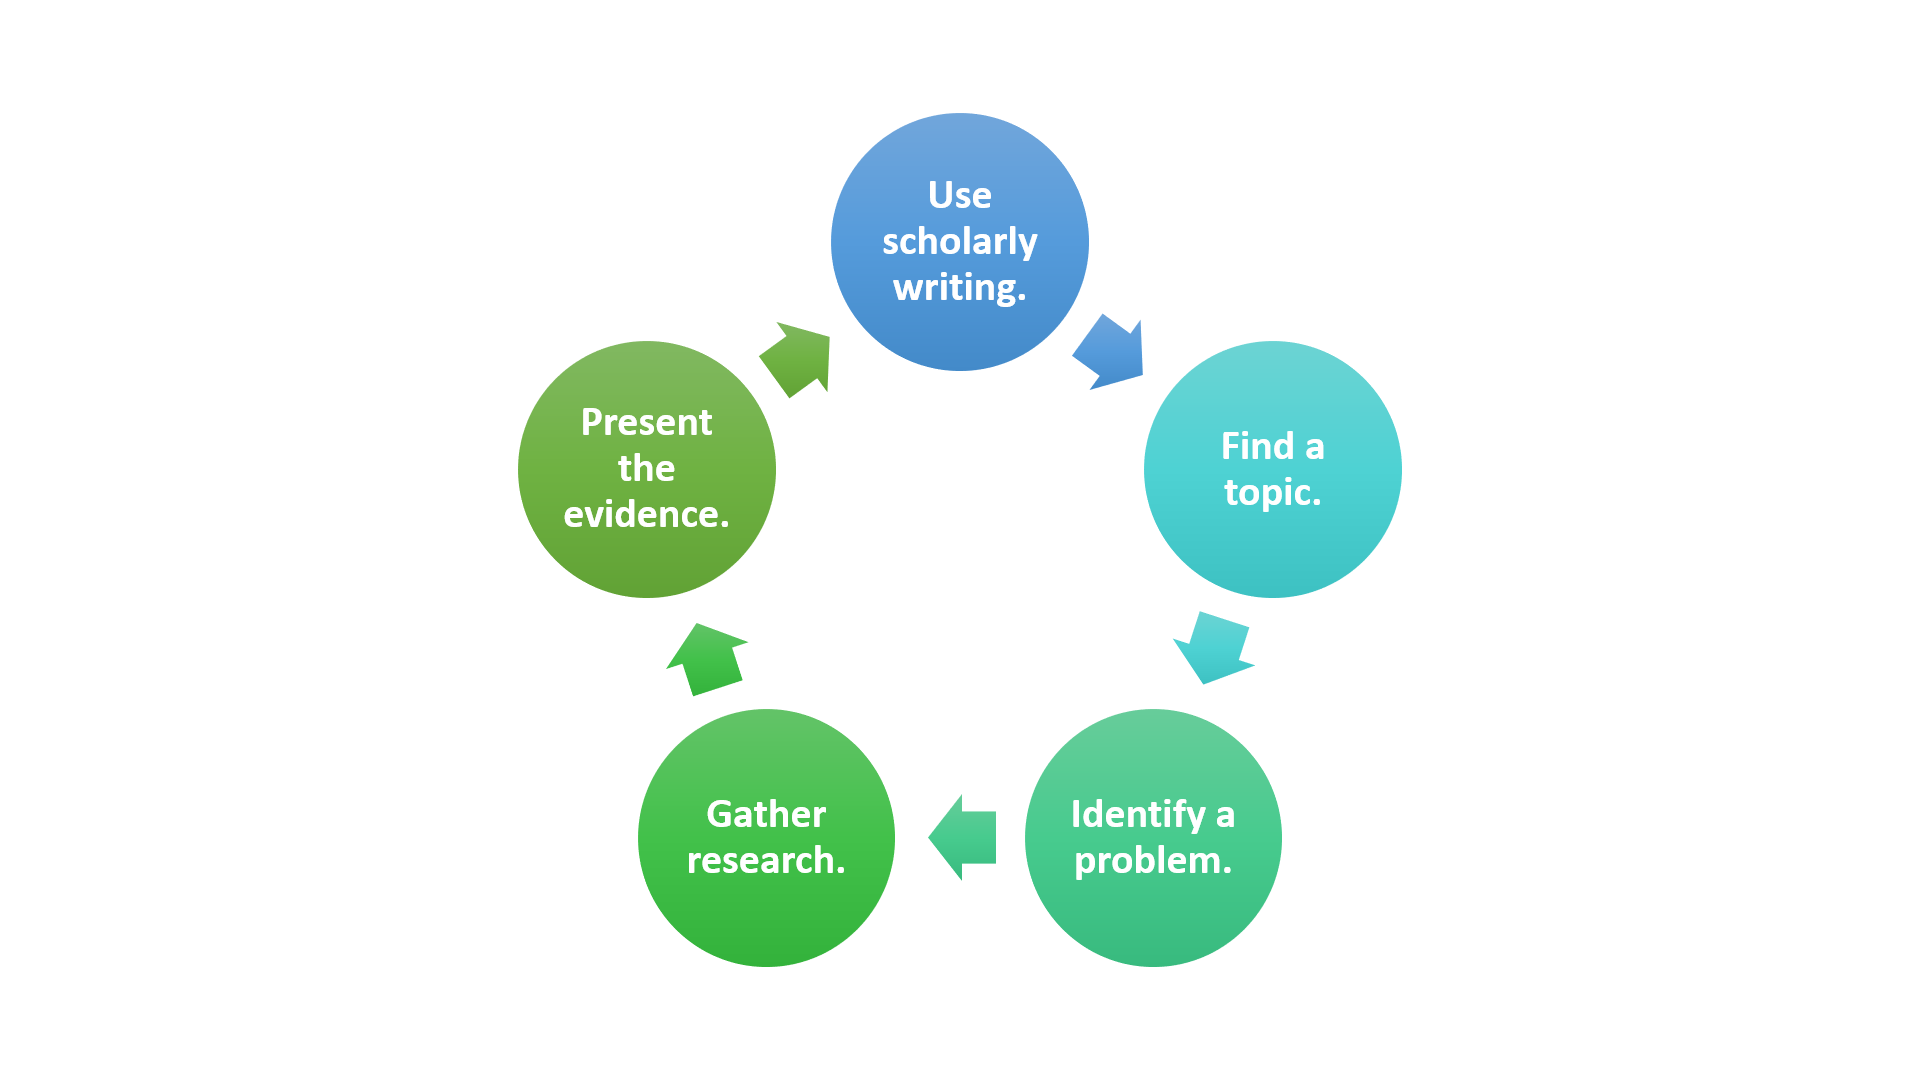 A circle graph of the 5 steps to research writing